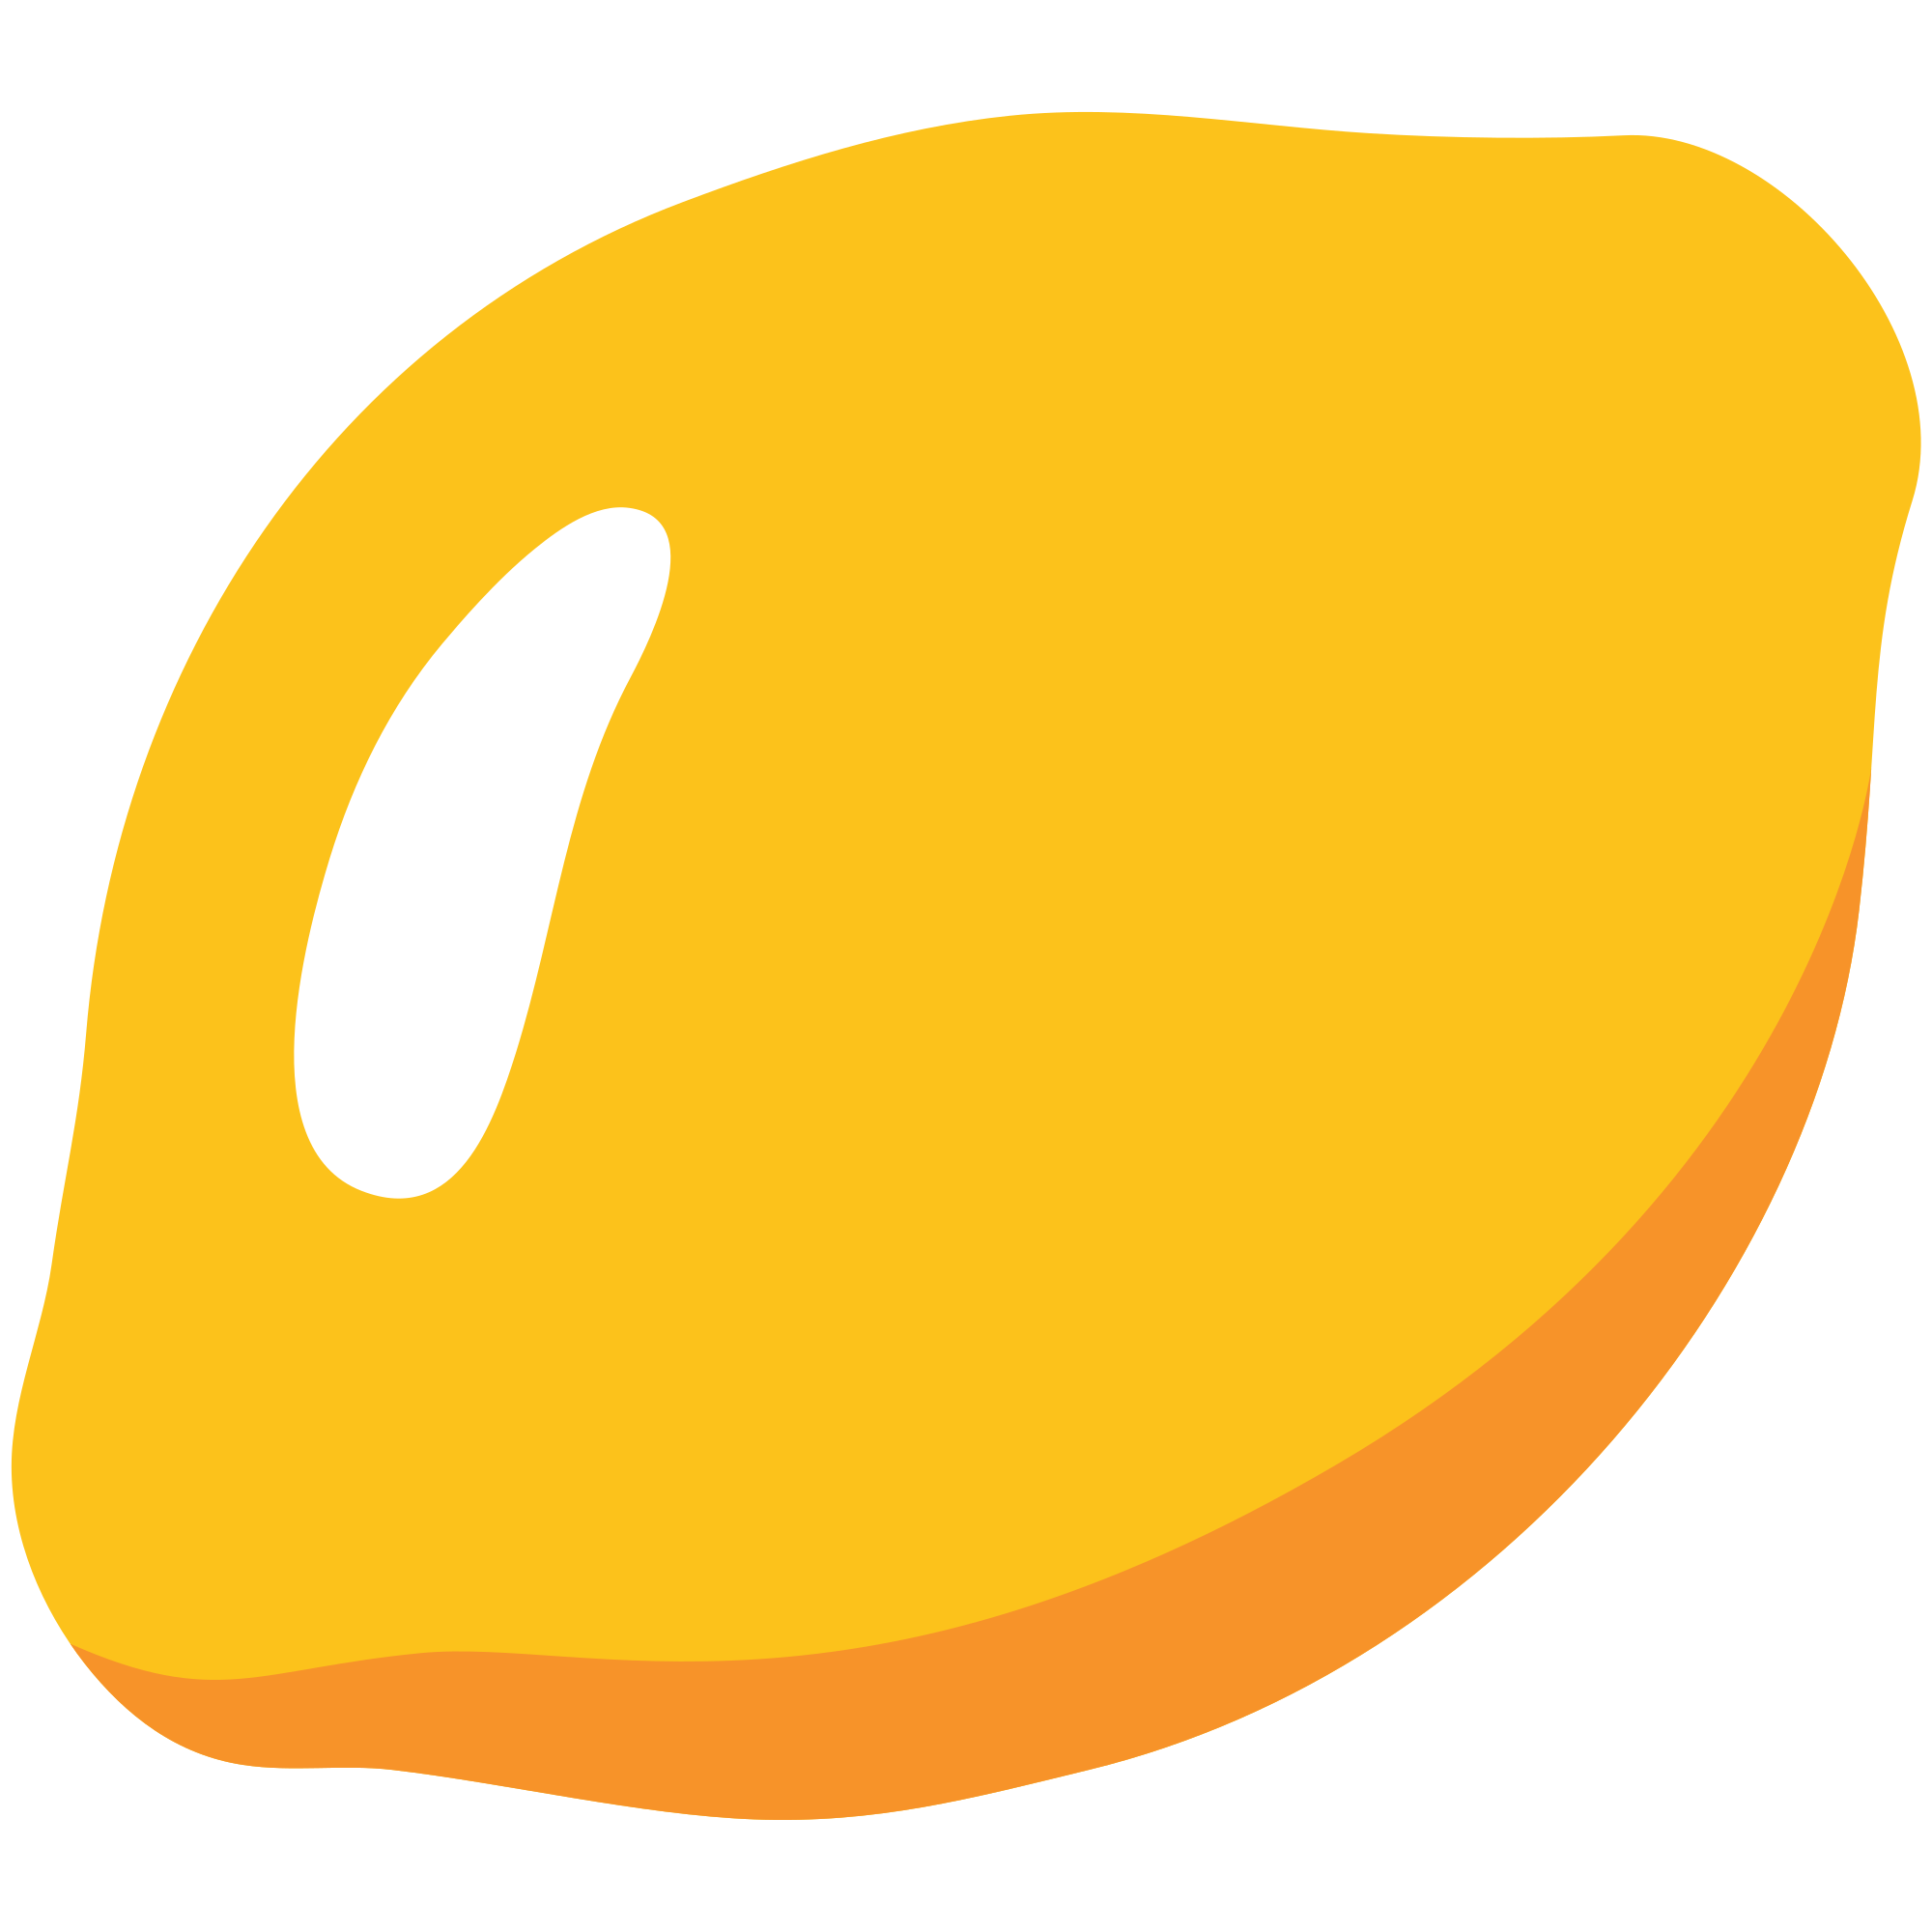 Lemon emoji png. File u f b